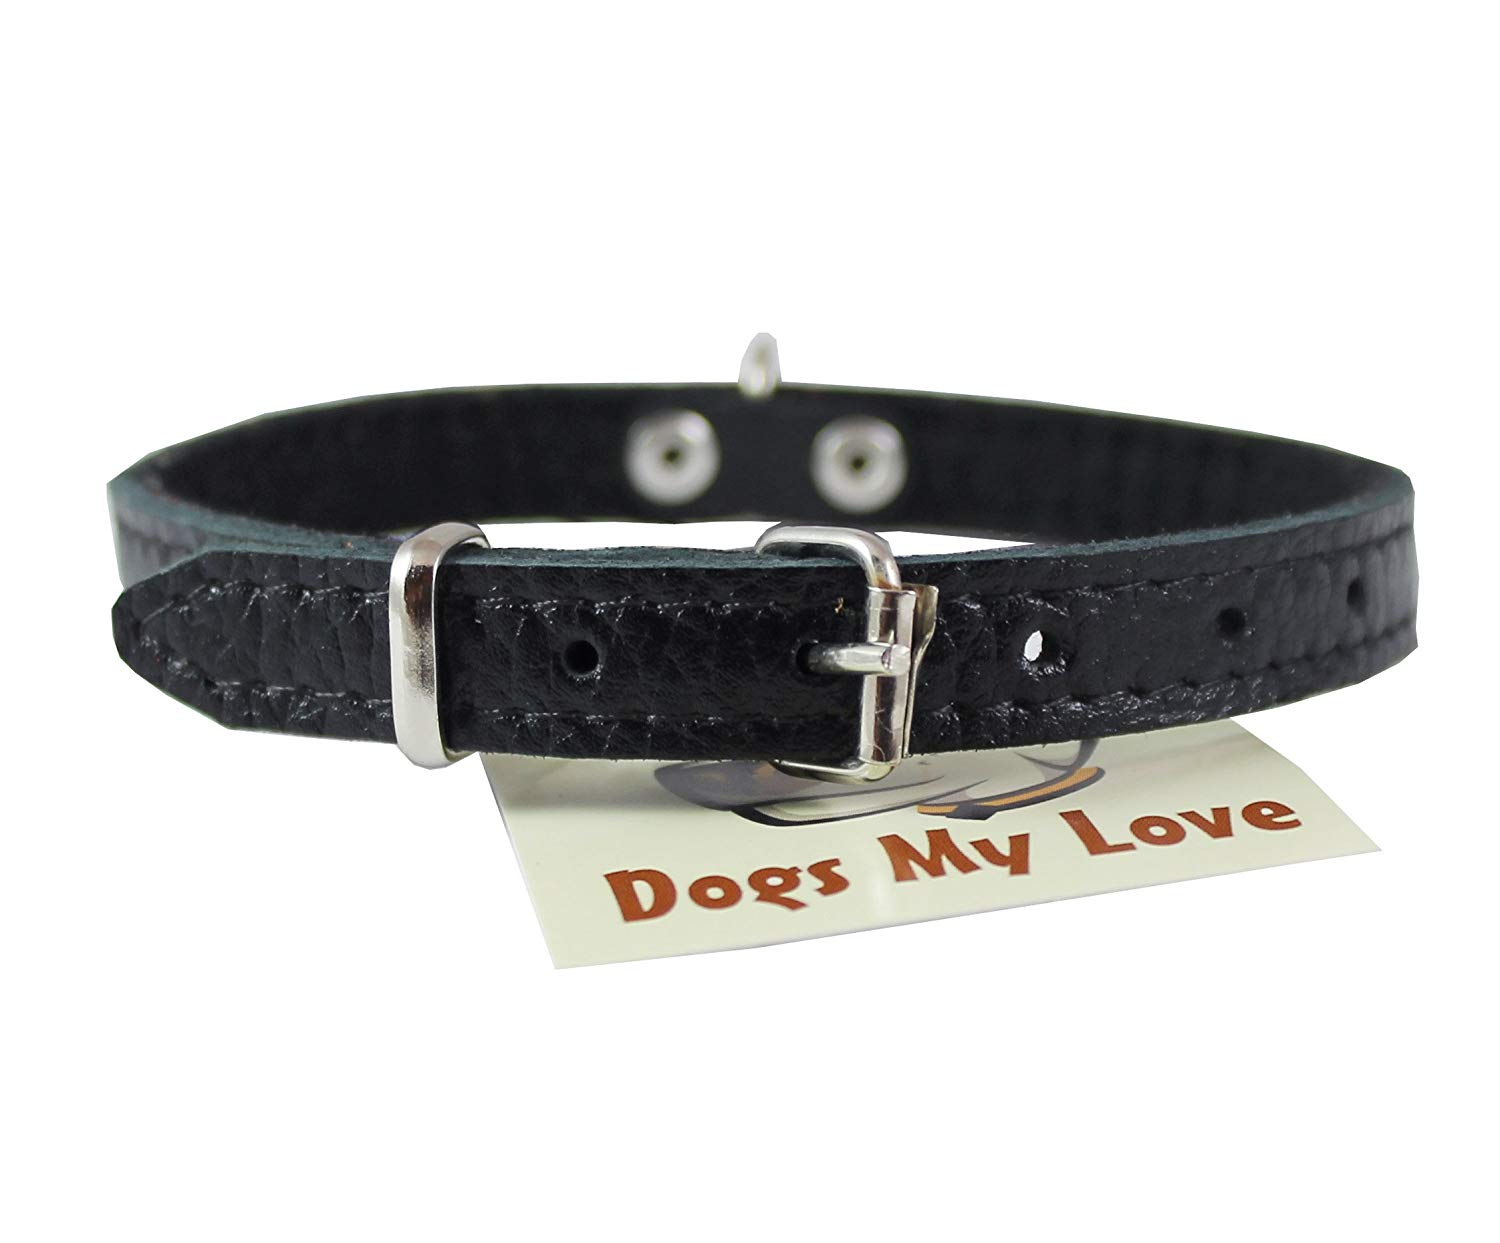 "Dogs My Love Genuine Leather Felt Padded Dog Collar X-Small 11"" x1/2"" Wide Fits 8""-10"" Neck, Chihuahua, Yorkshire Terrier, Puppies"